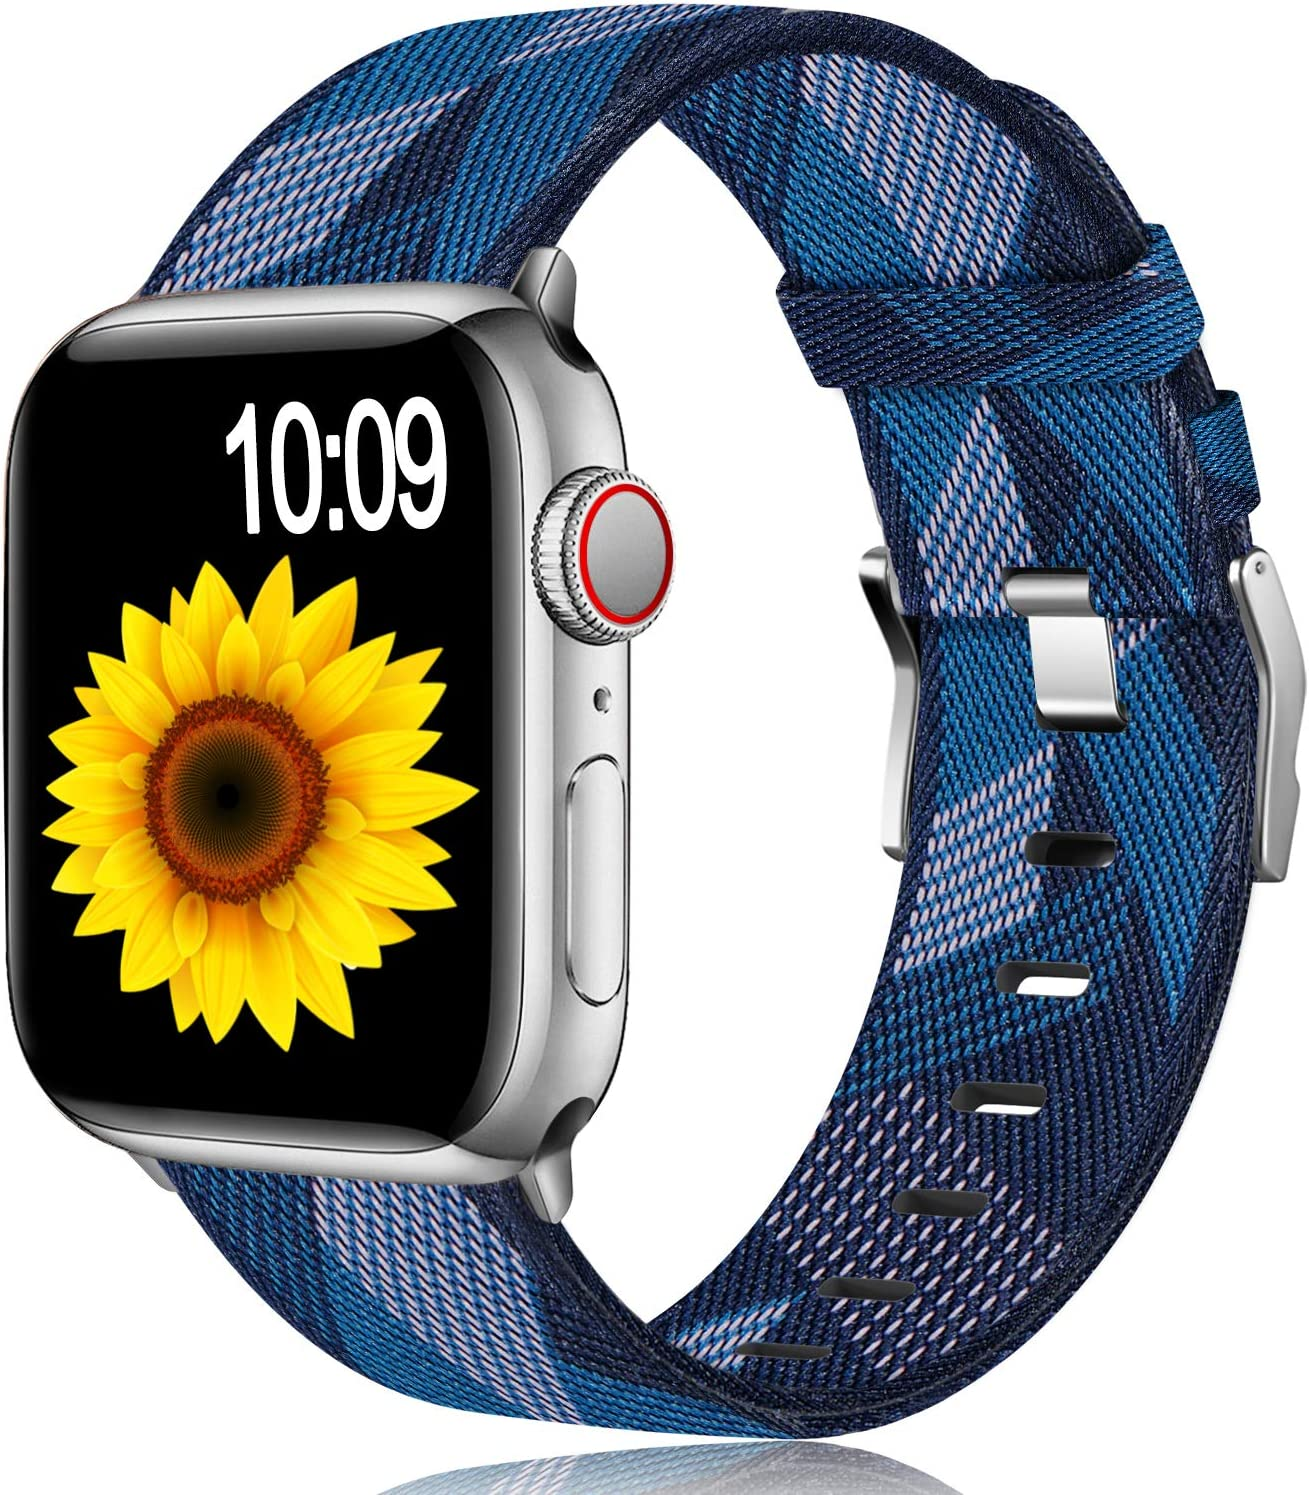 Muranne Fabric Bands Compatible for Apple Watch 38mm 40mm iWatch SE & Series 6 & Series 5 4 3 2 1, Dressy Adjustable Breathable Woven Canvas Watchbands Accessories for Women Men, Diamond Pattern Blue